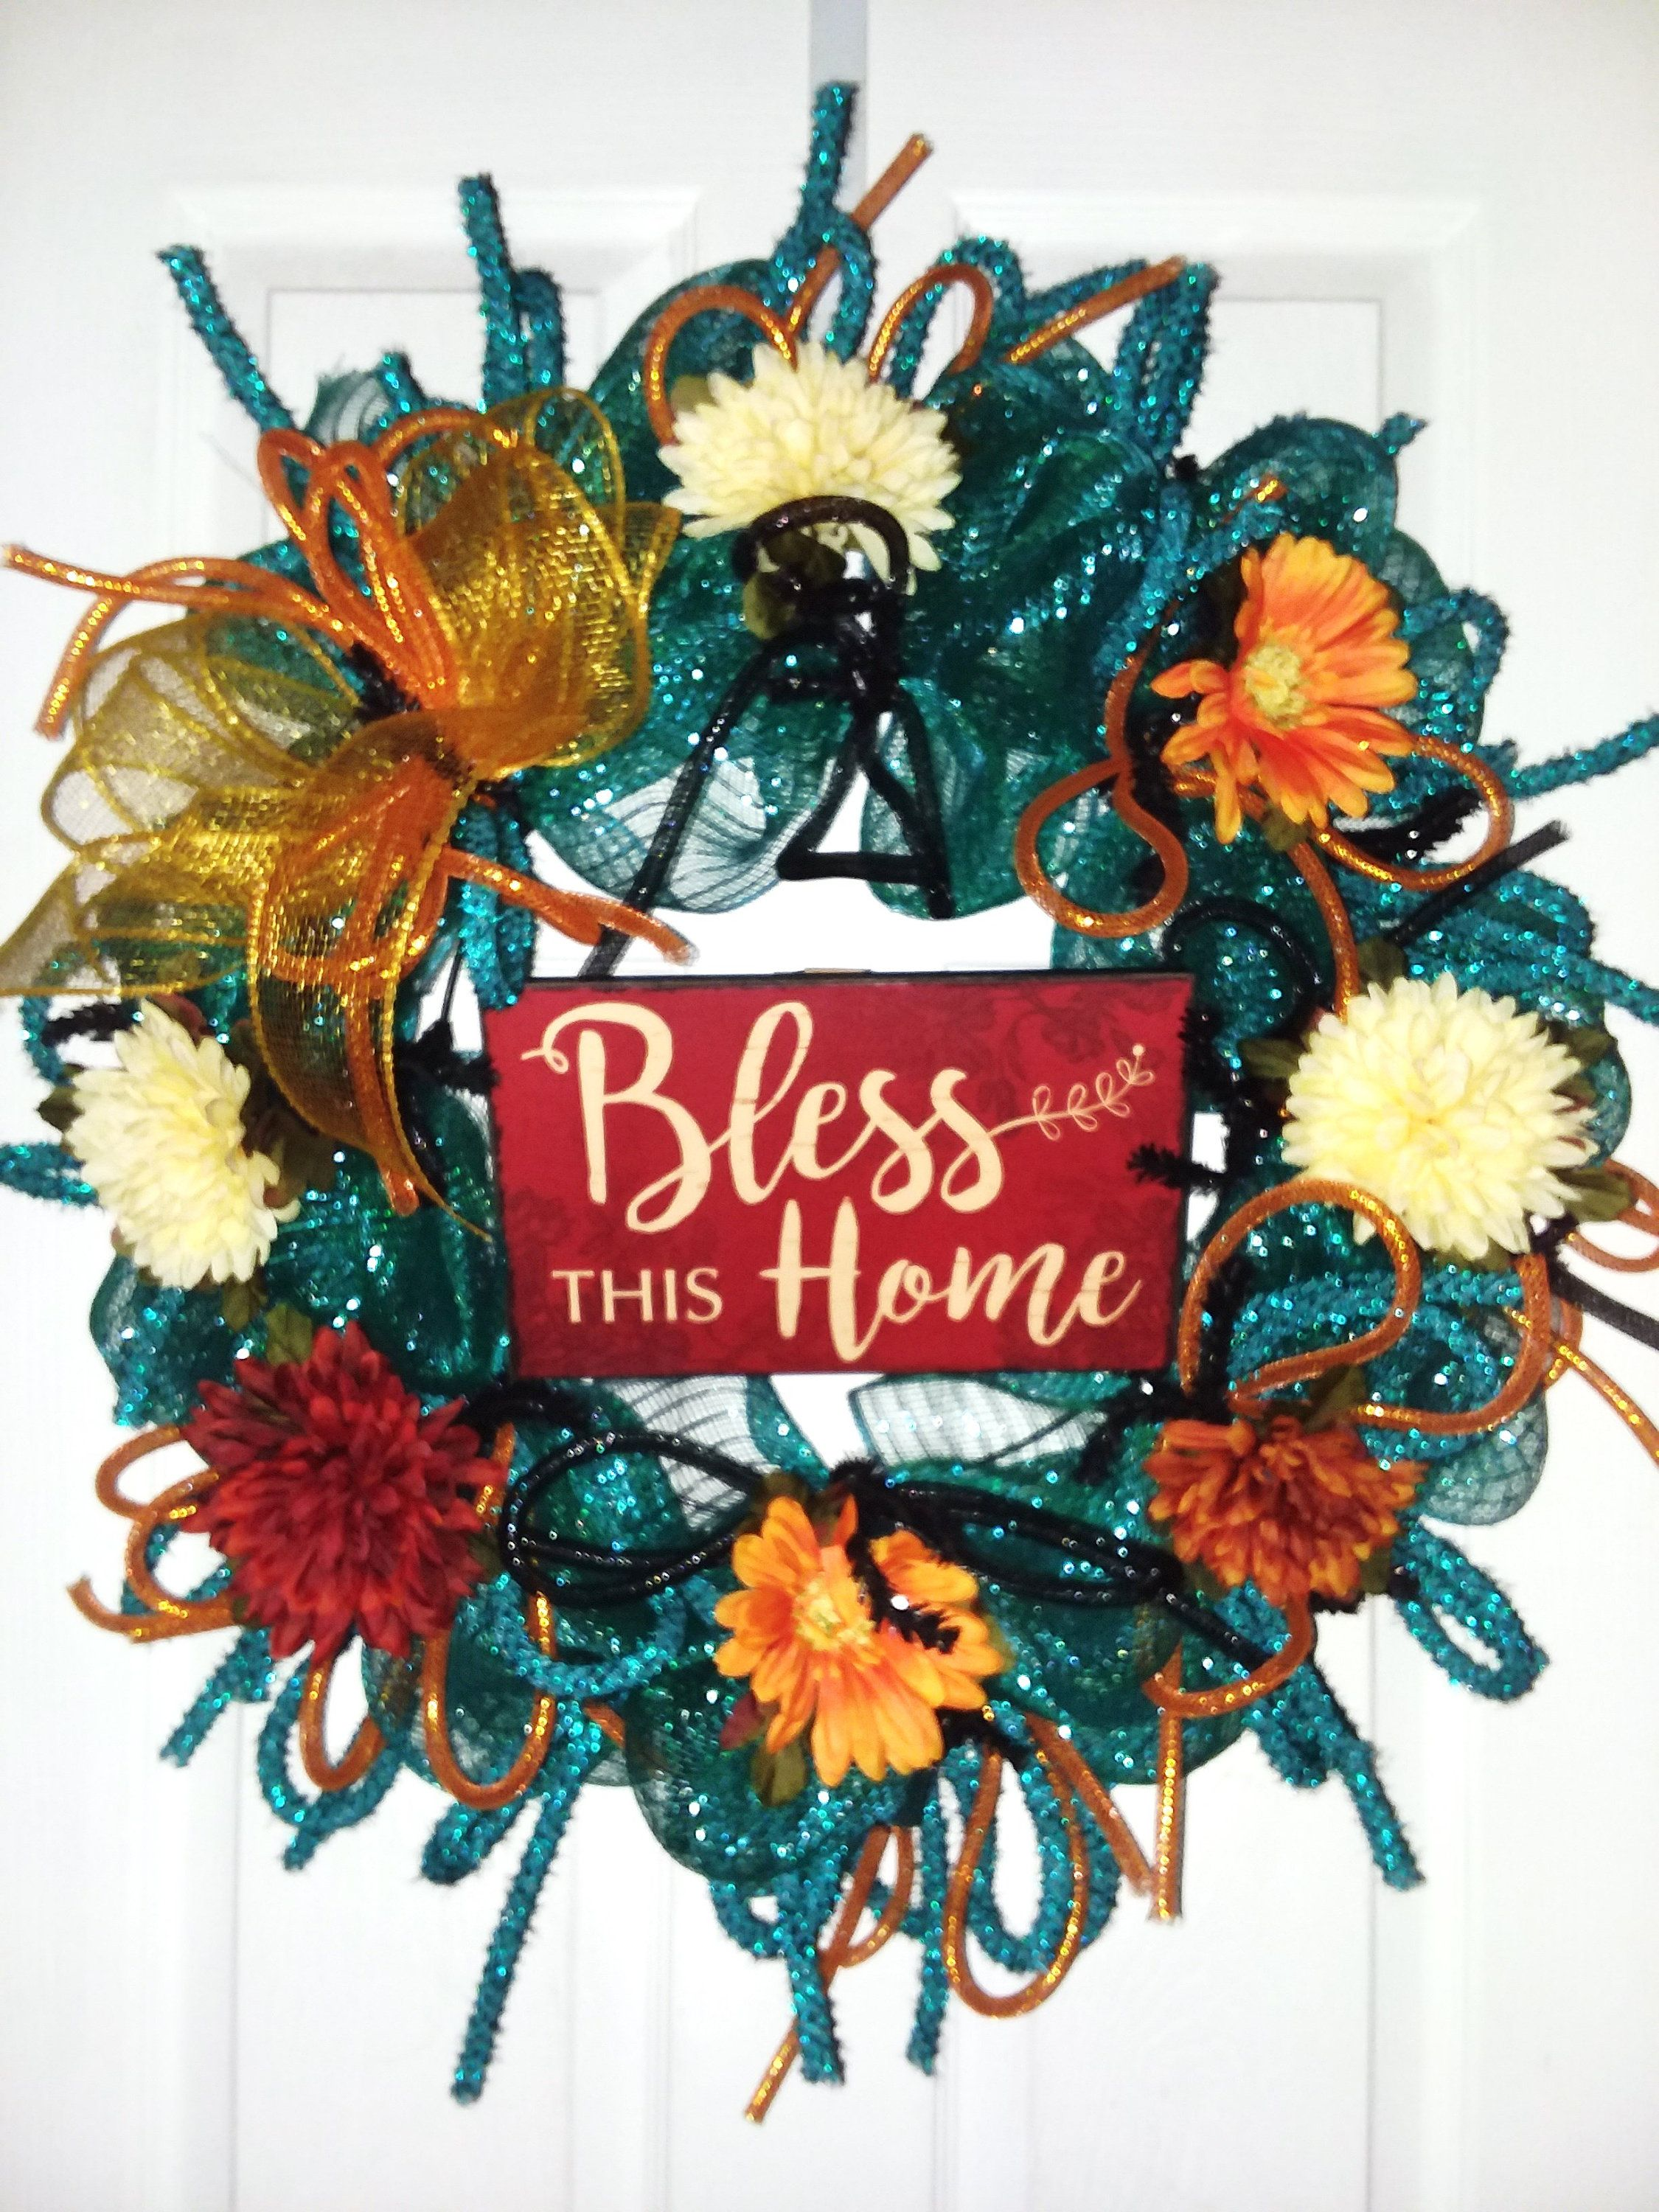 Bless This Home Wreath Wreath With Home Sign Spring Wreath Mesh Wreath Spring Front Door Wreath Home Door Hanger Floral Wreath In 2020 Spring Front Door Wreaths Spring Wreath Wreaths For